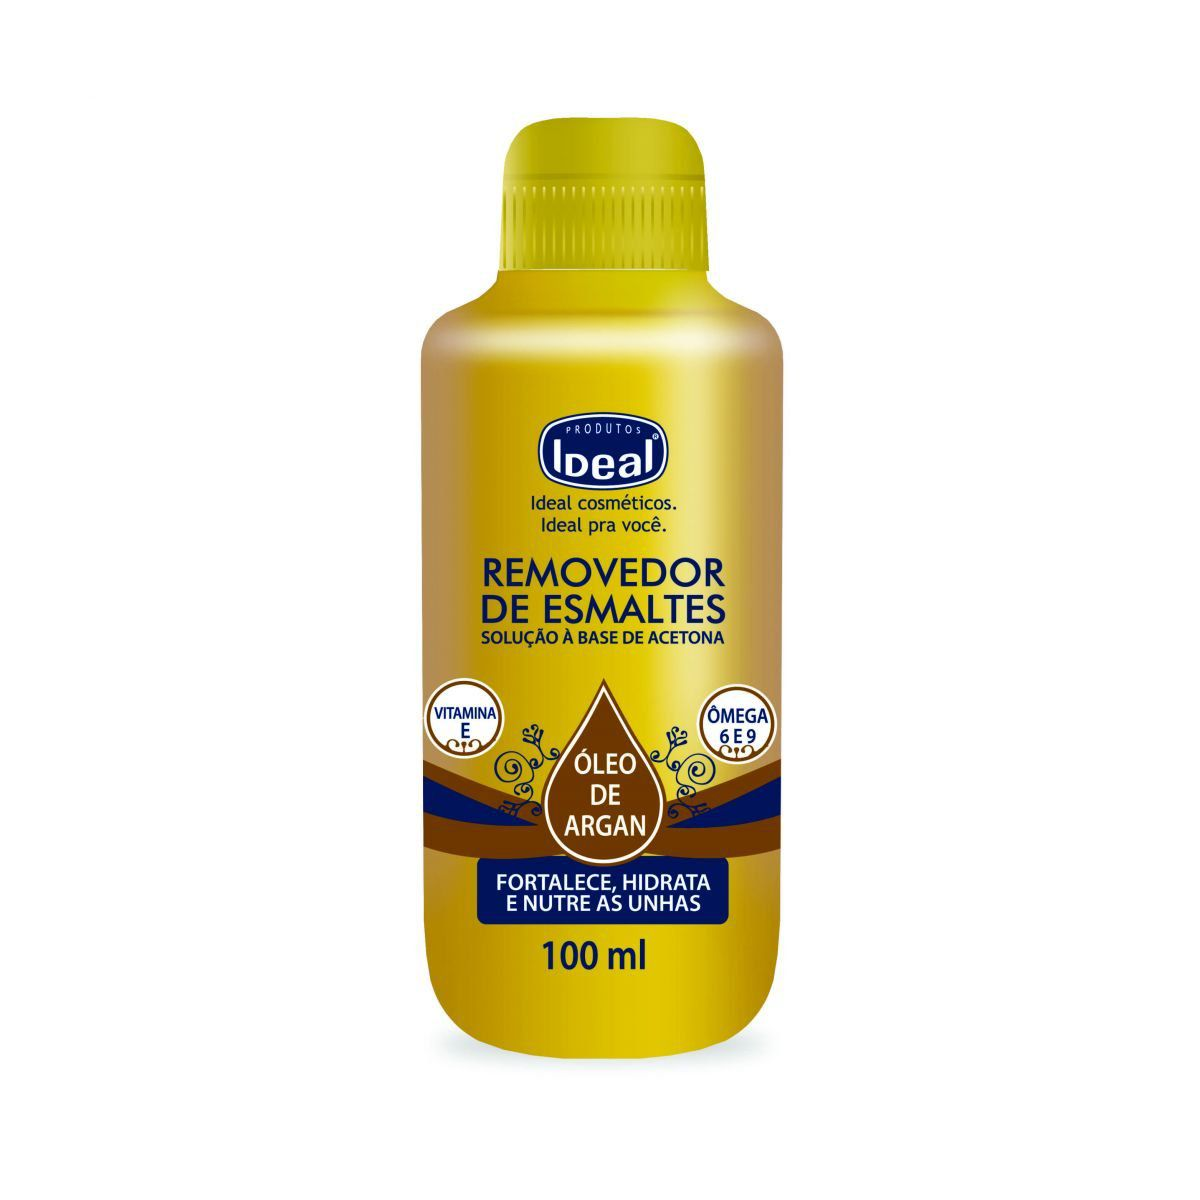 Removedor de Esmaltes Óleo de Argan 100ml - Ideal